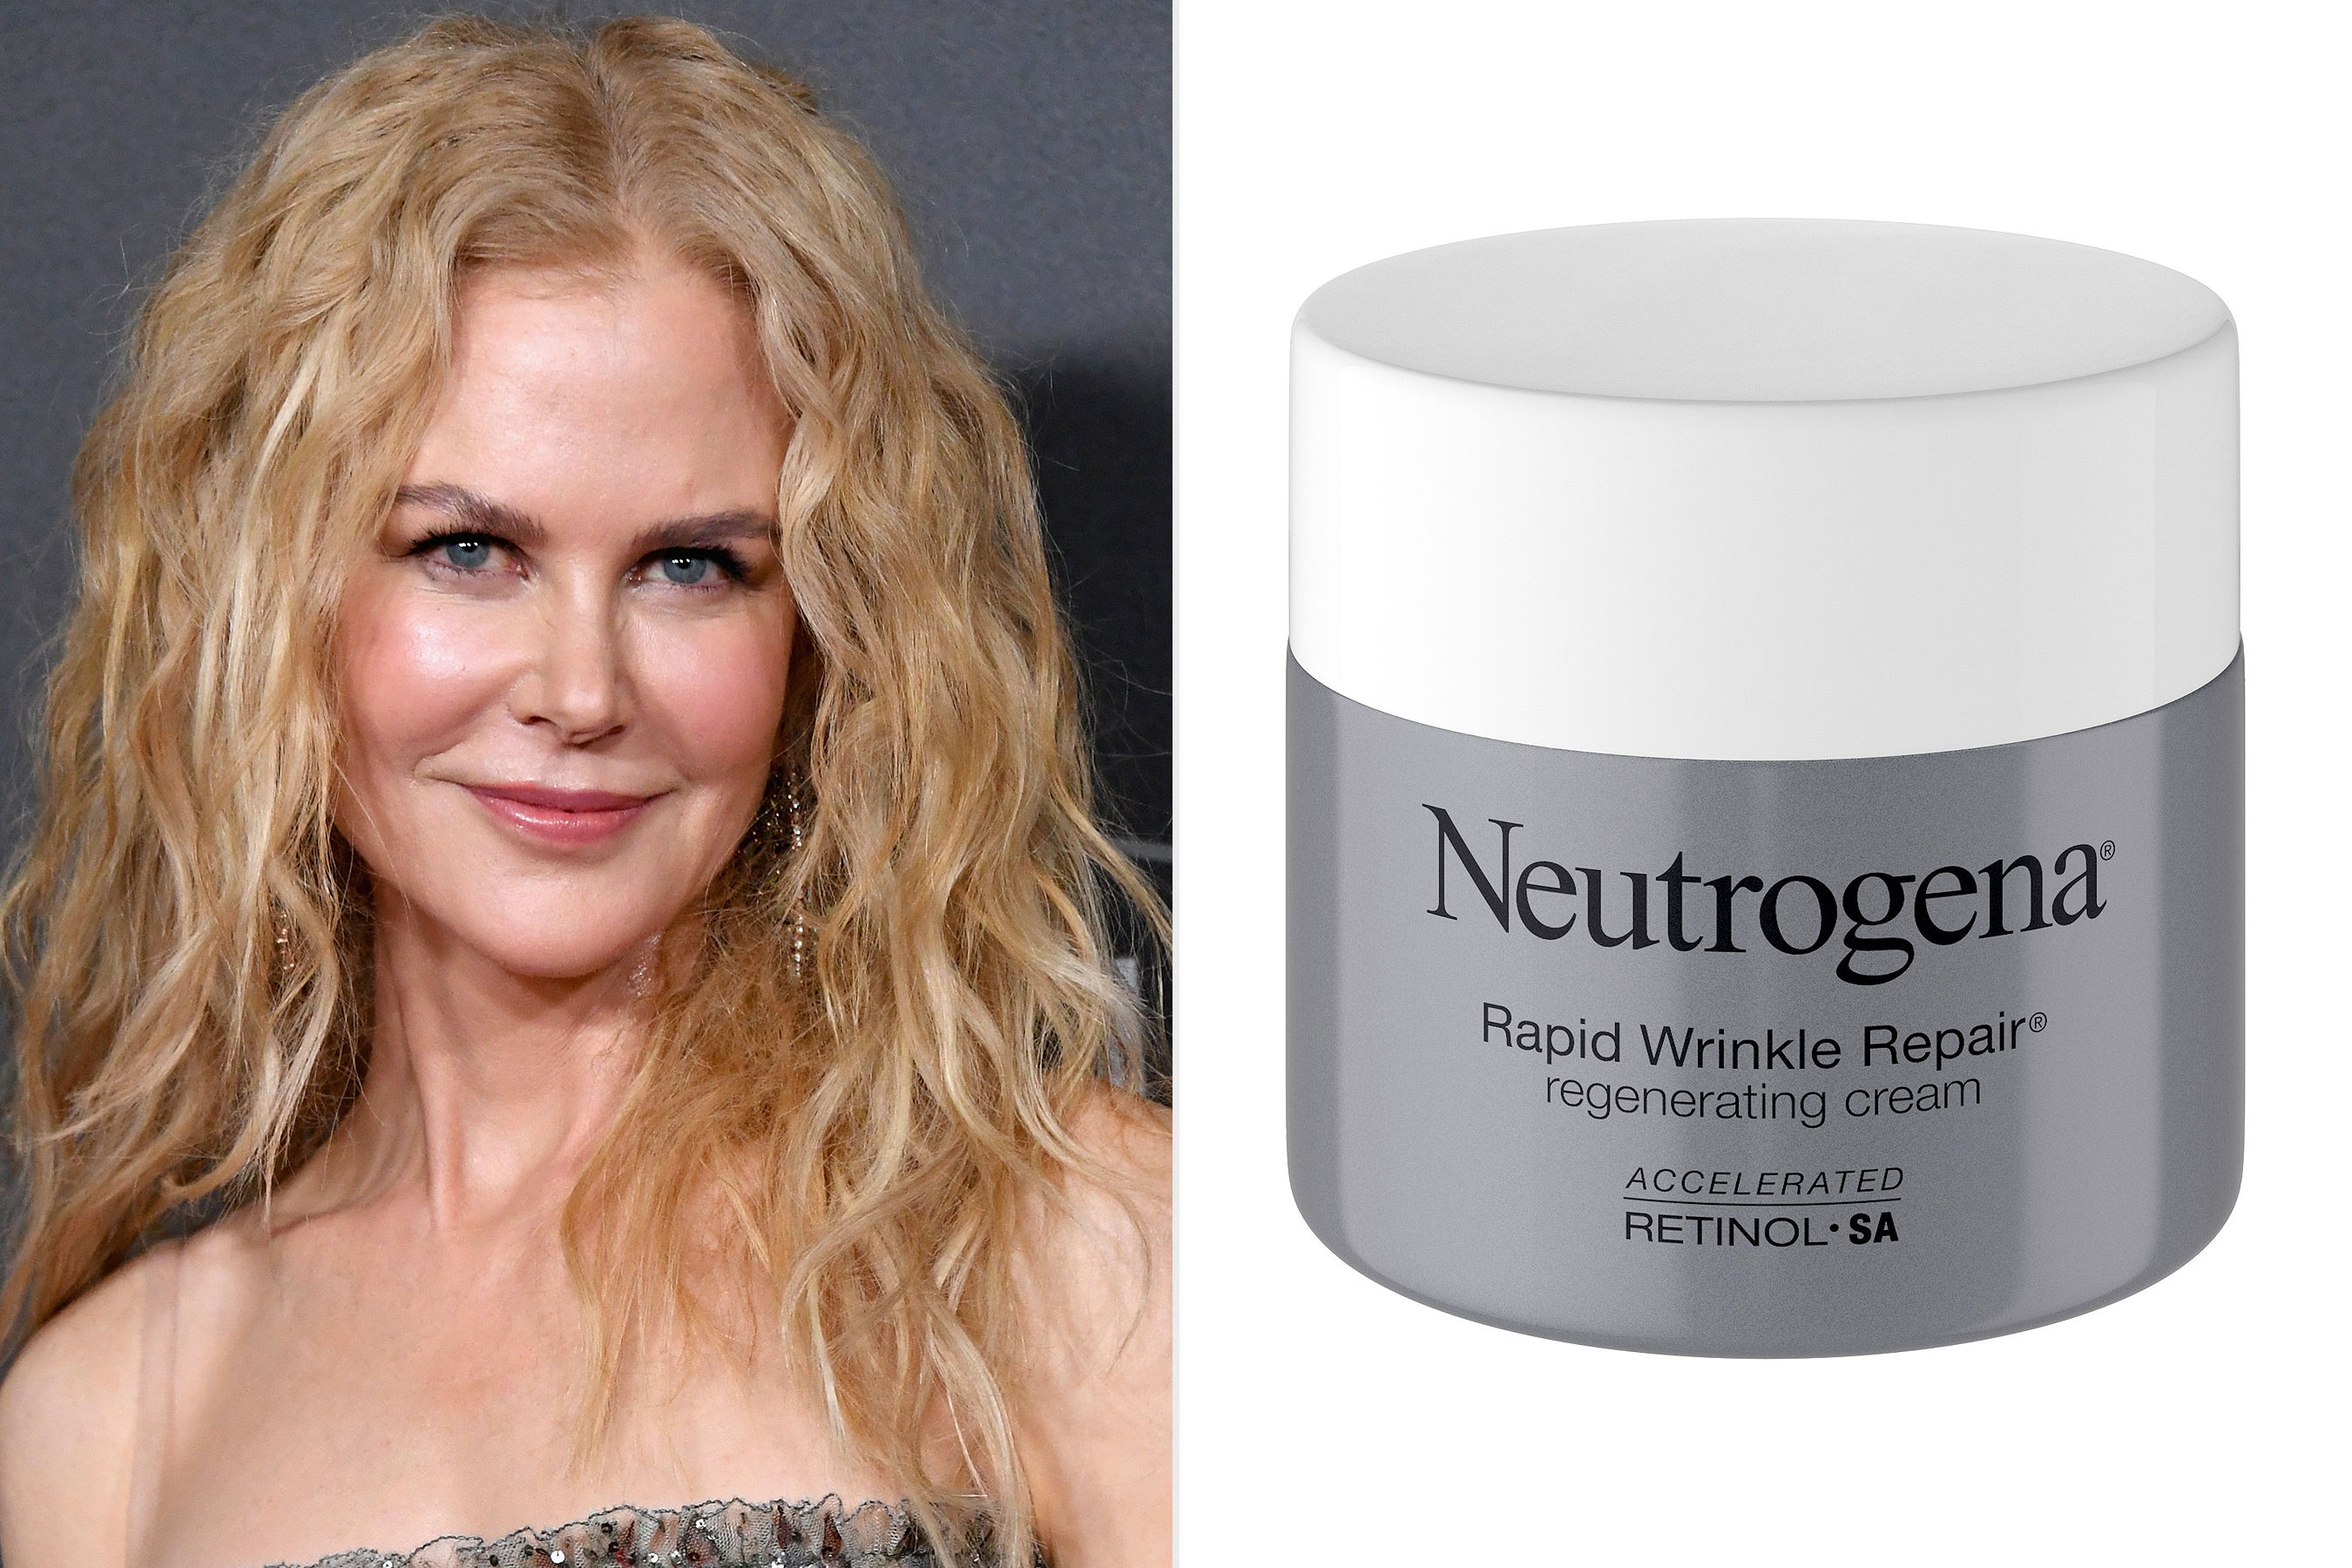 Nicole Kidman Uses This $25 Anti-Aging Face Cream Every Day